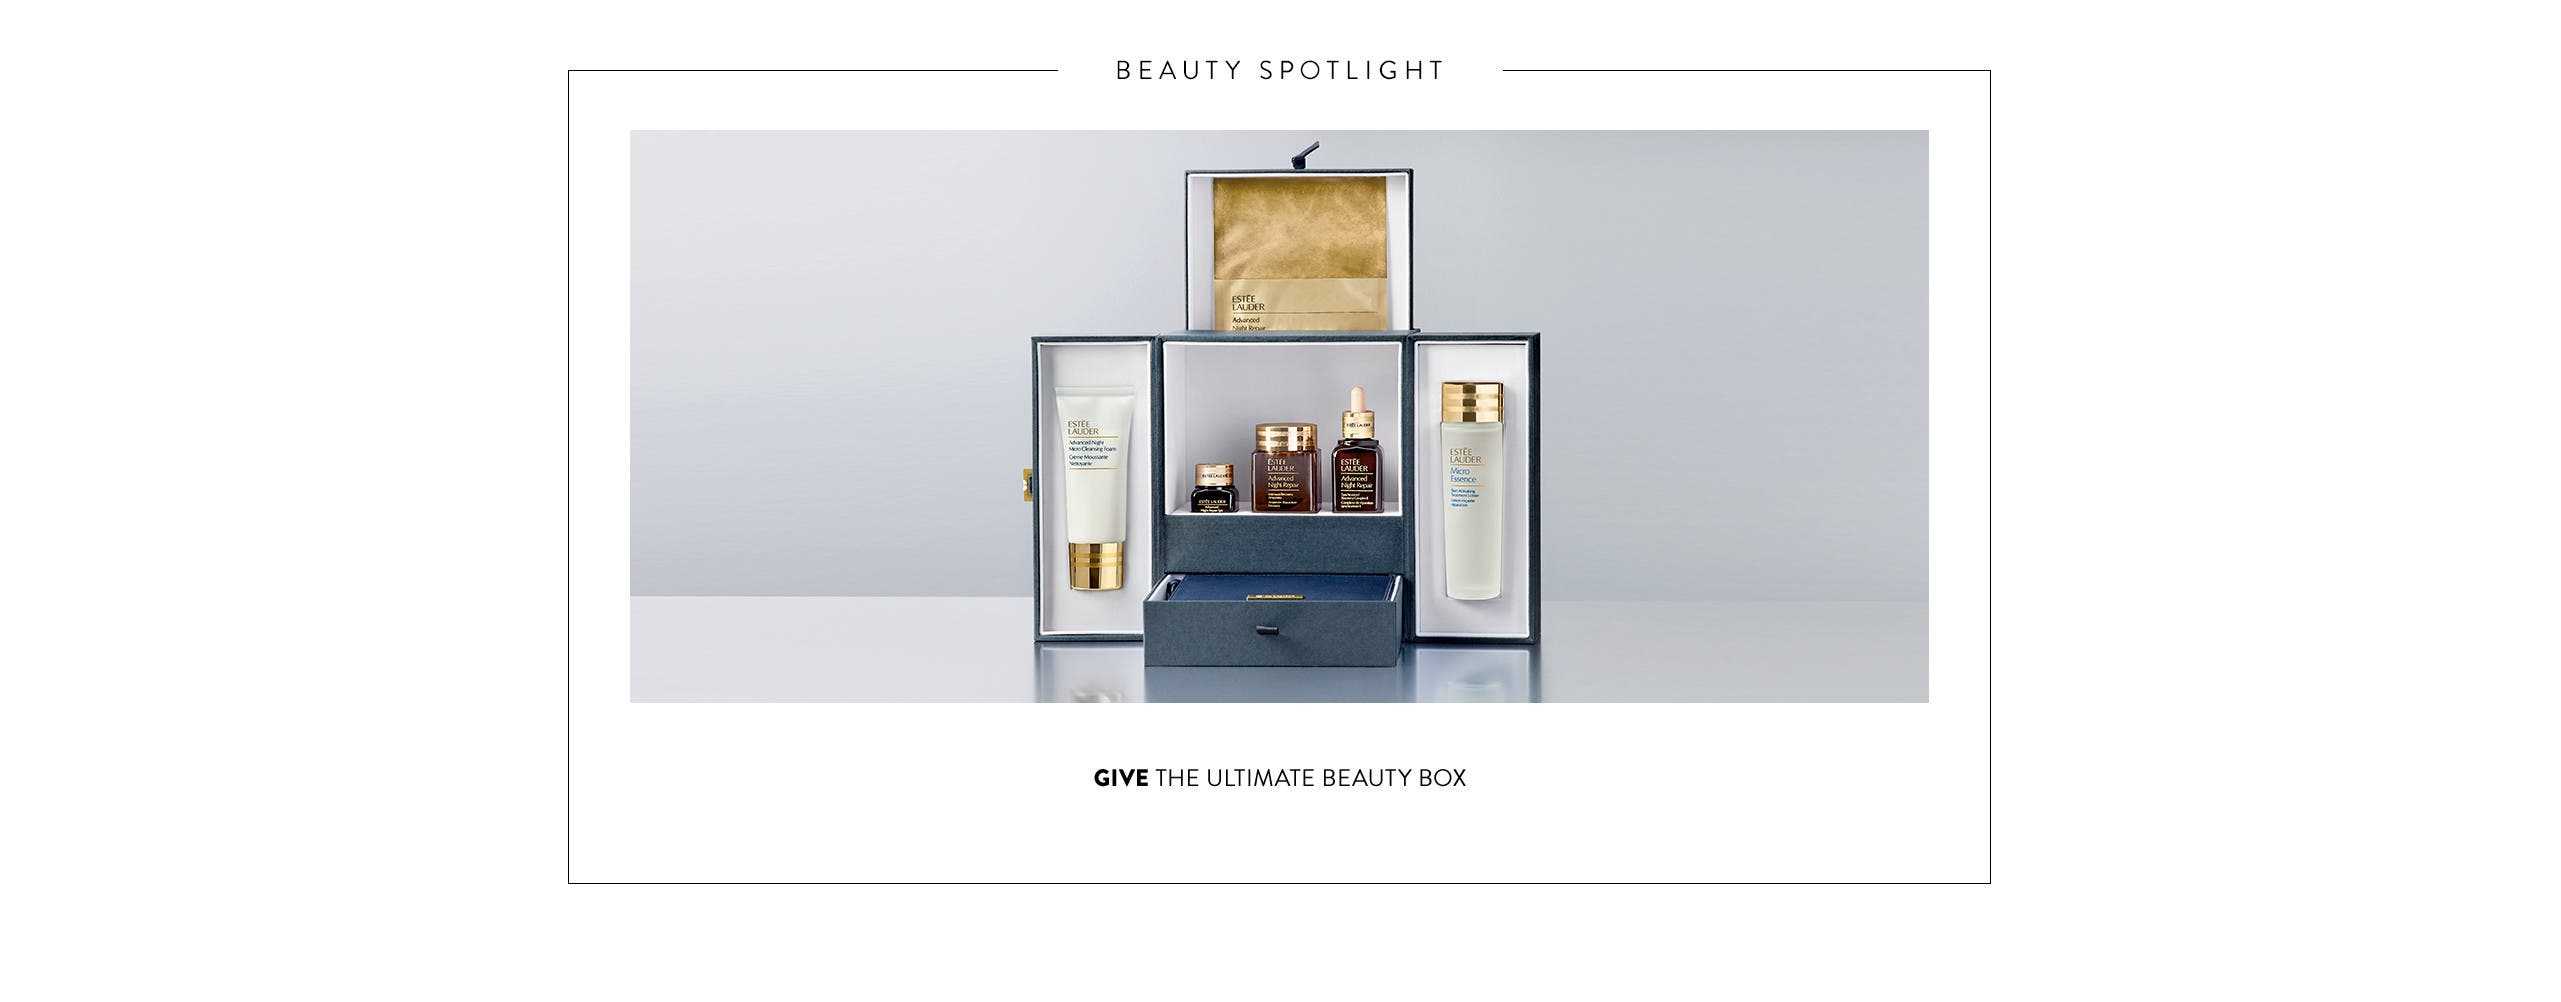 Give the ultimate beauty box.